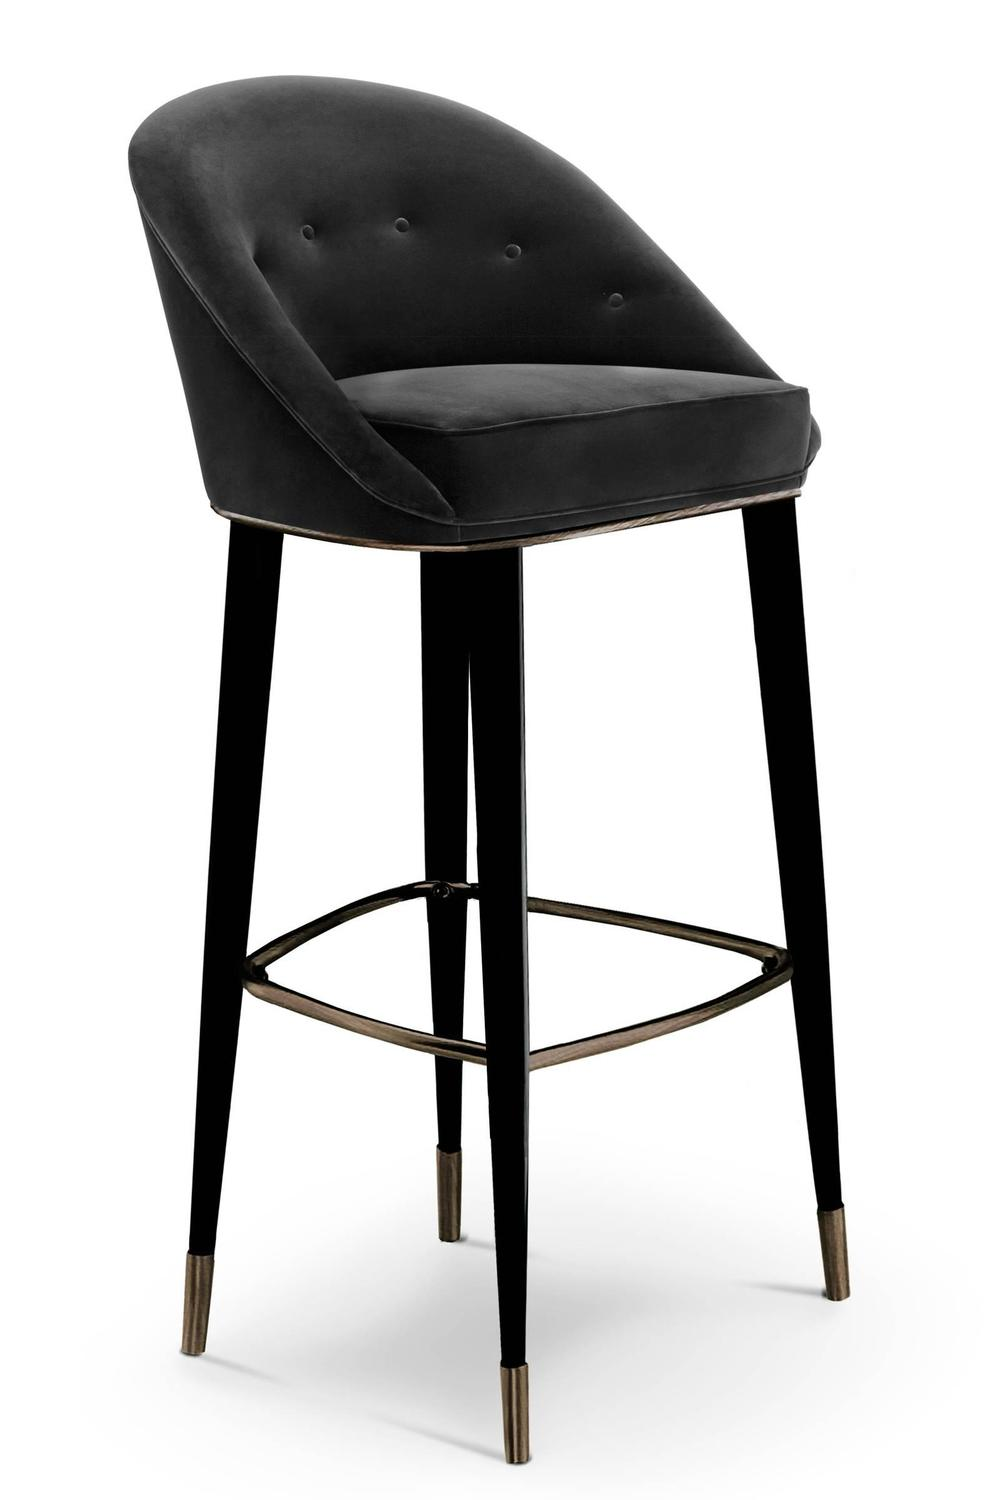 Bar Stool Myla With Cotton Velvet Seat And Black Lacquered Legs For Sale At  1stdibs